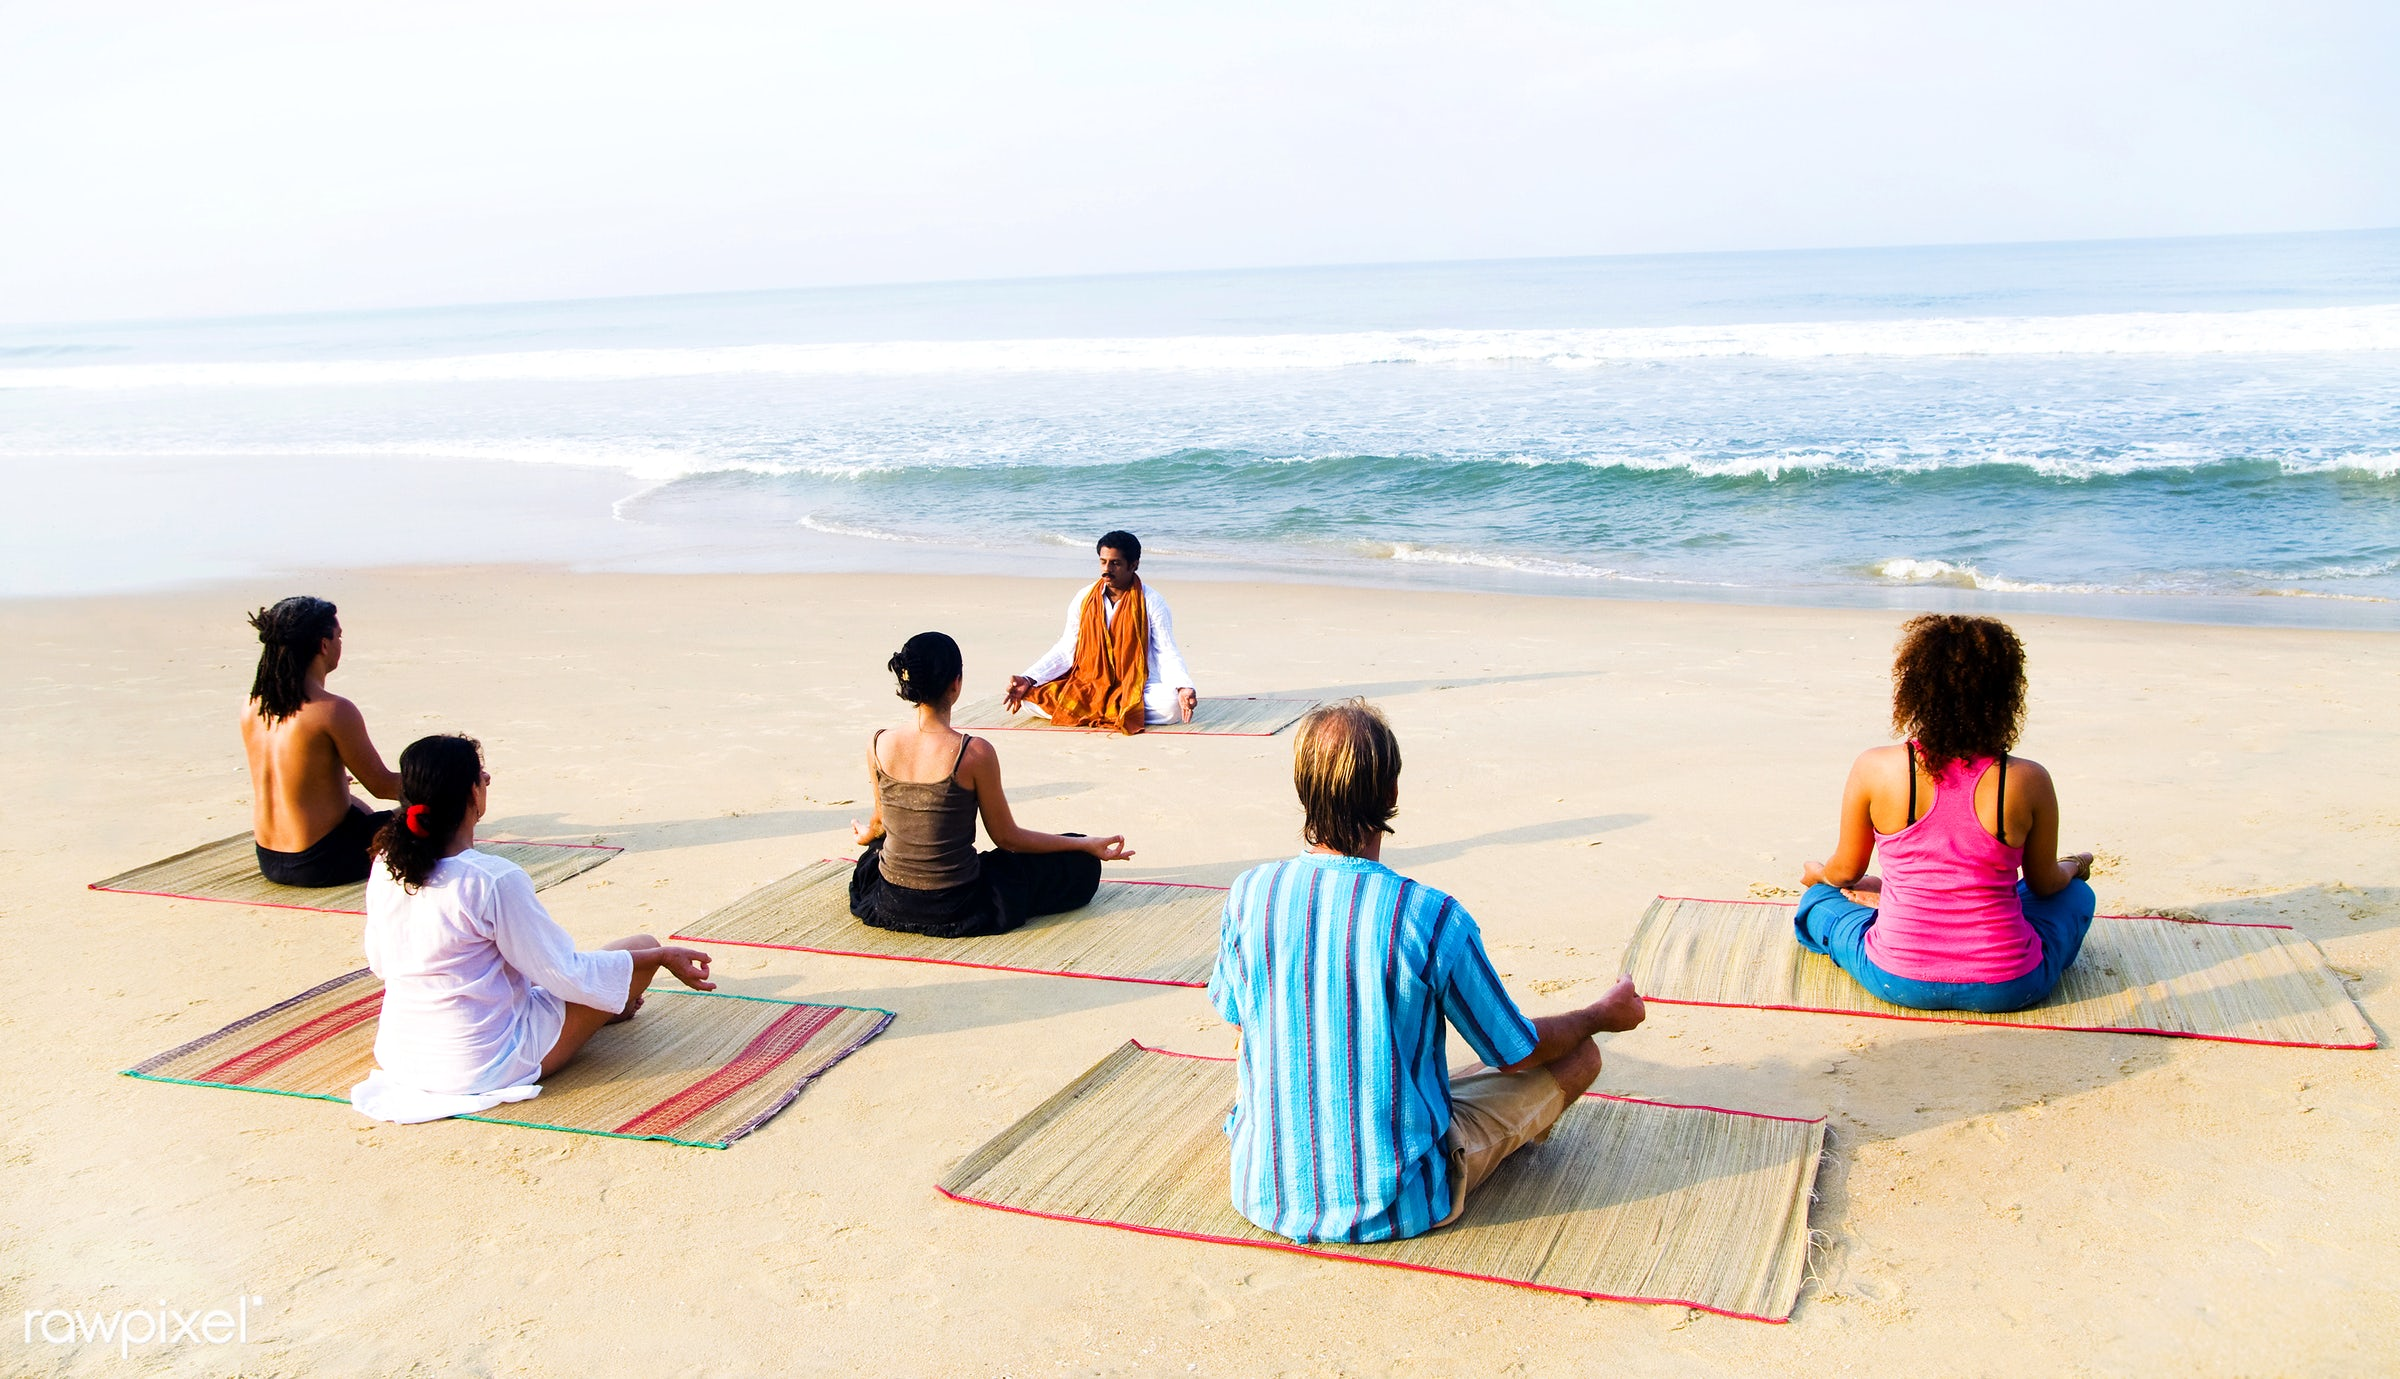 Healthy yoga class on the beach - activity, adult, beach, beauty in nature, body, body care, casual, class, coastline,...